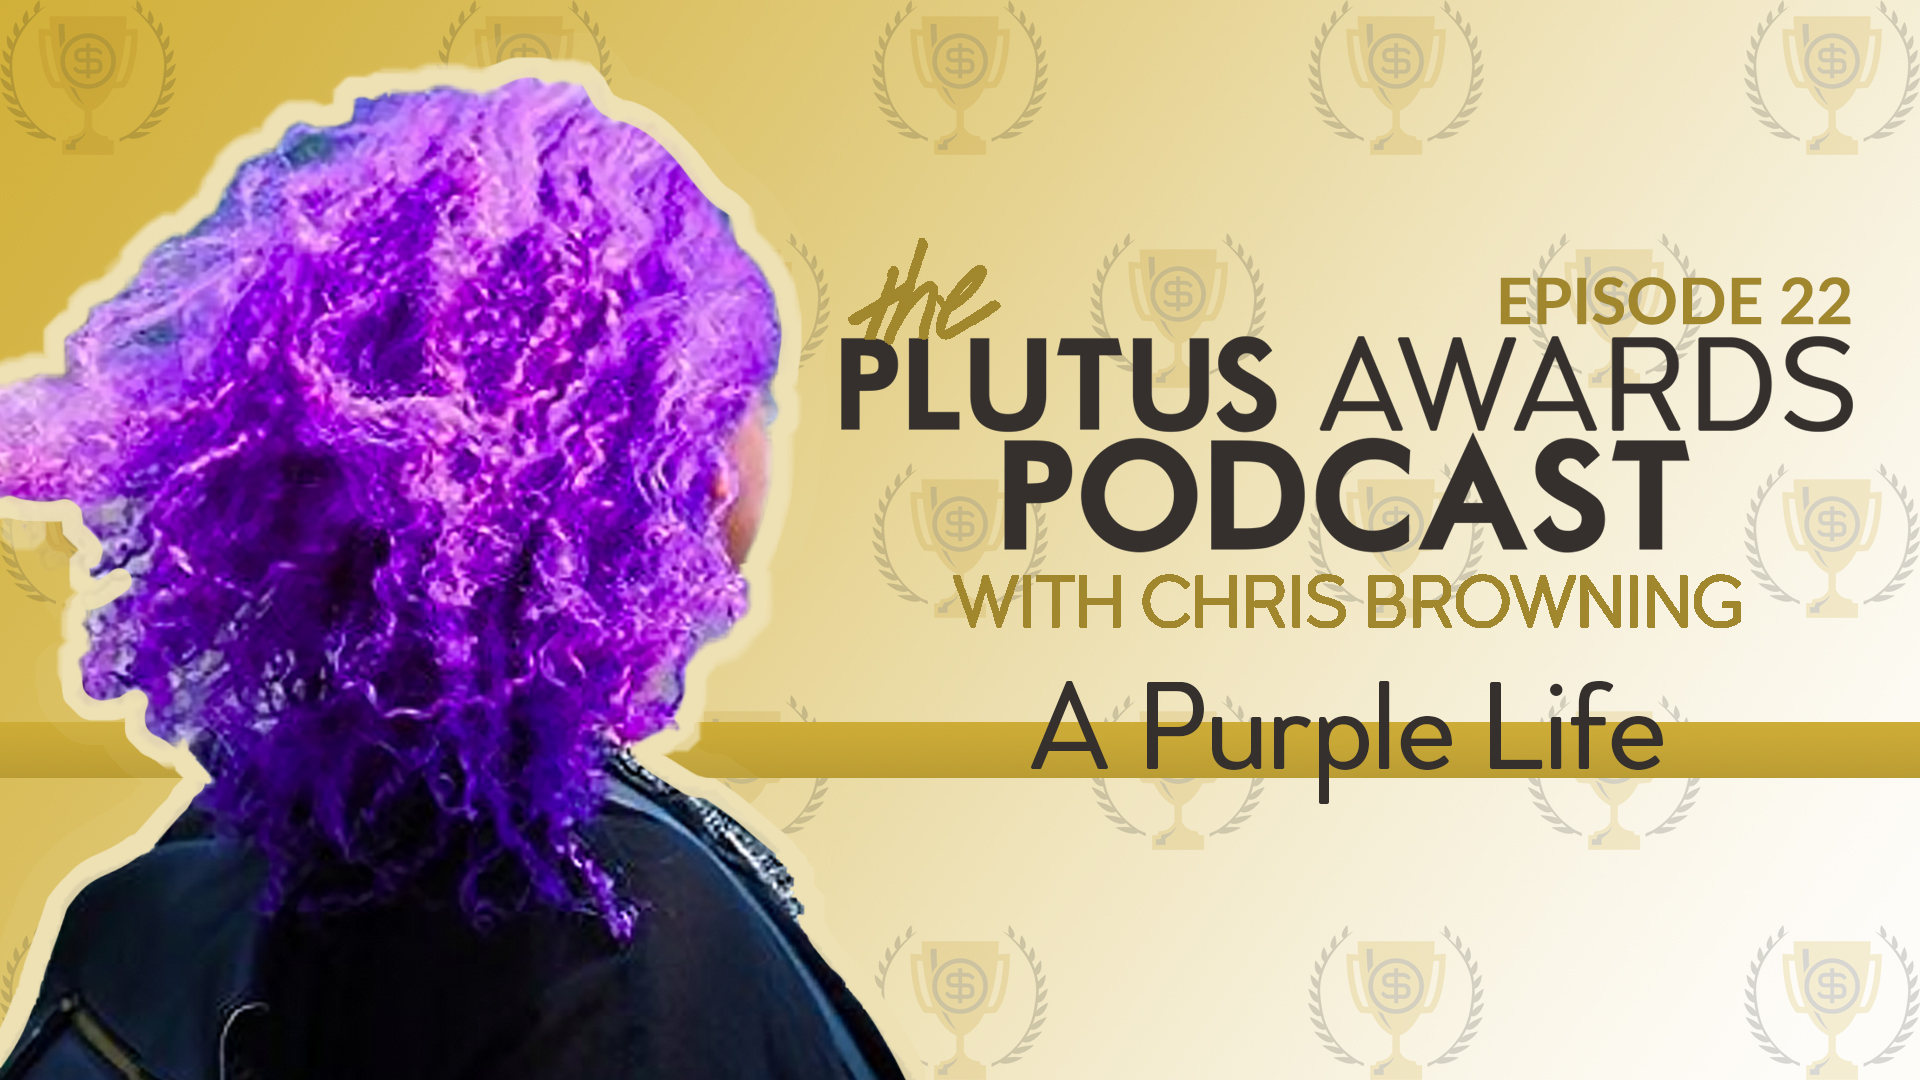 A Purple Life - Plutus Awards Podcast Featured Image